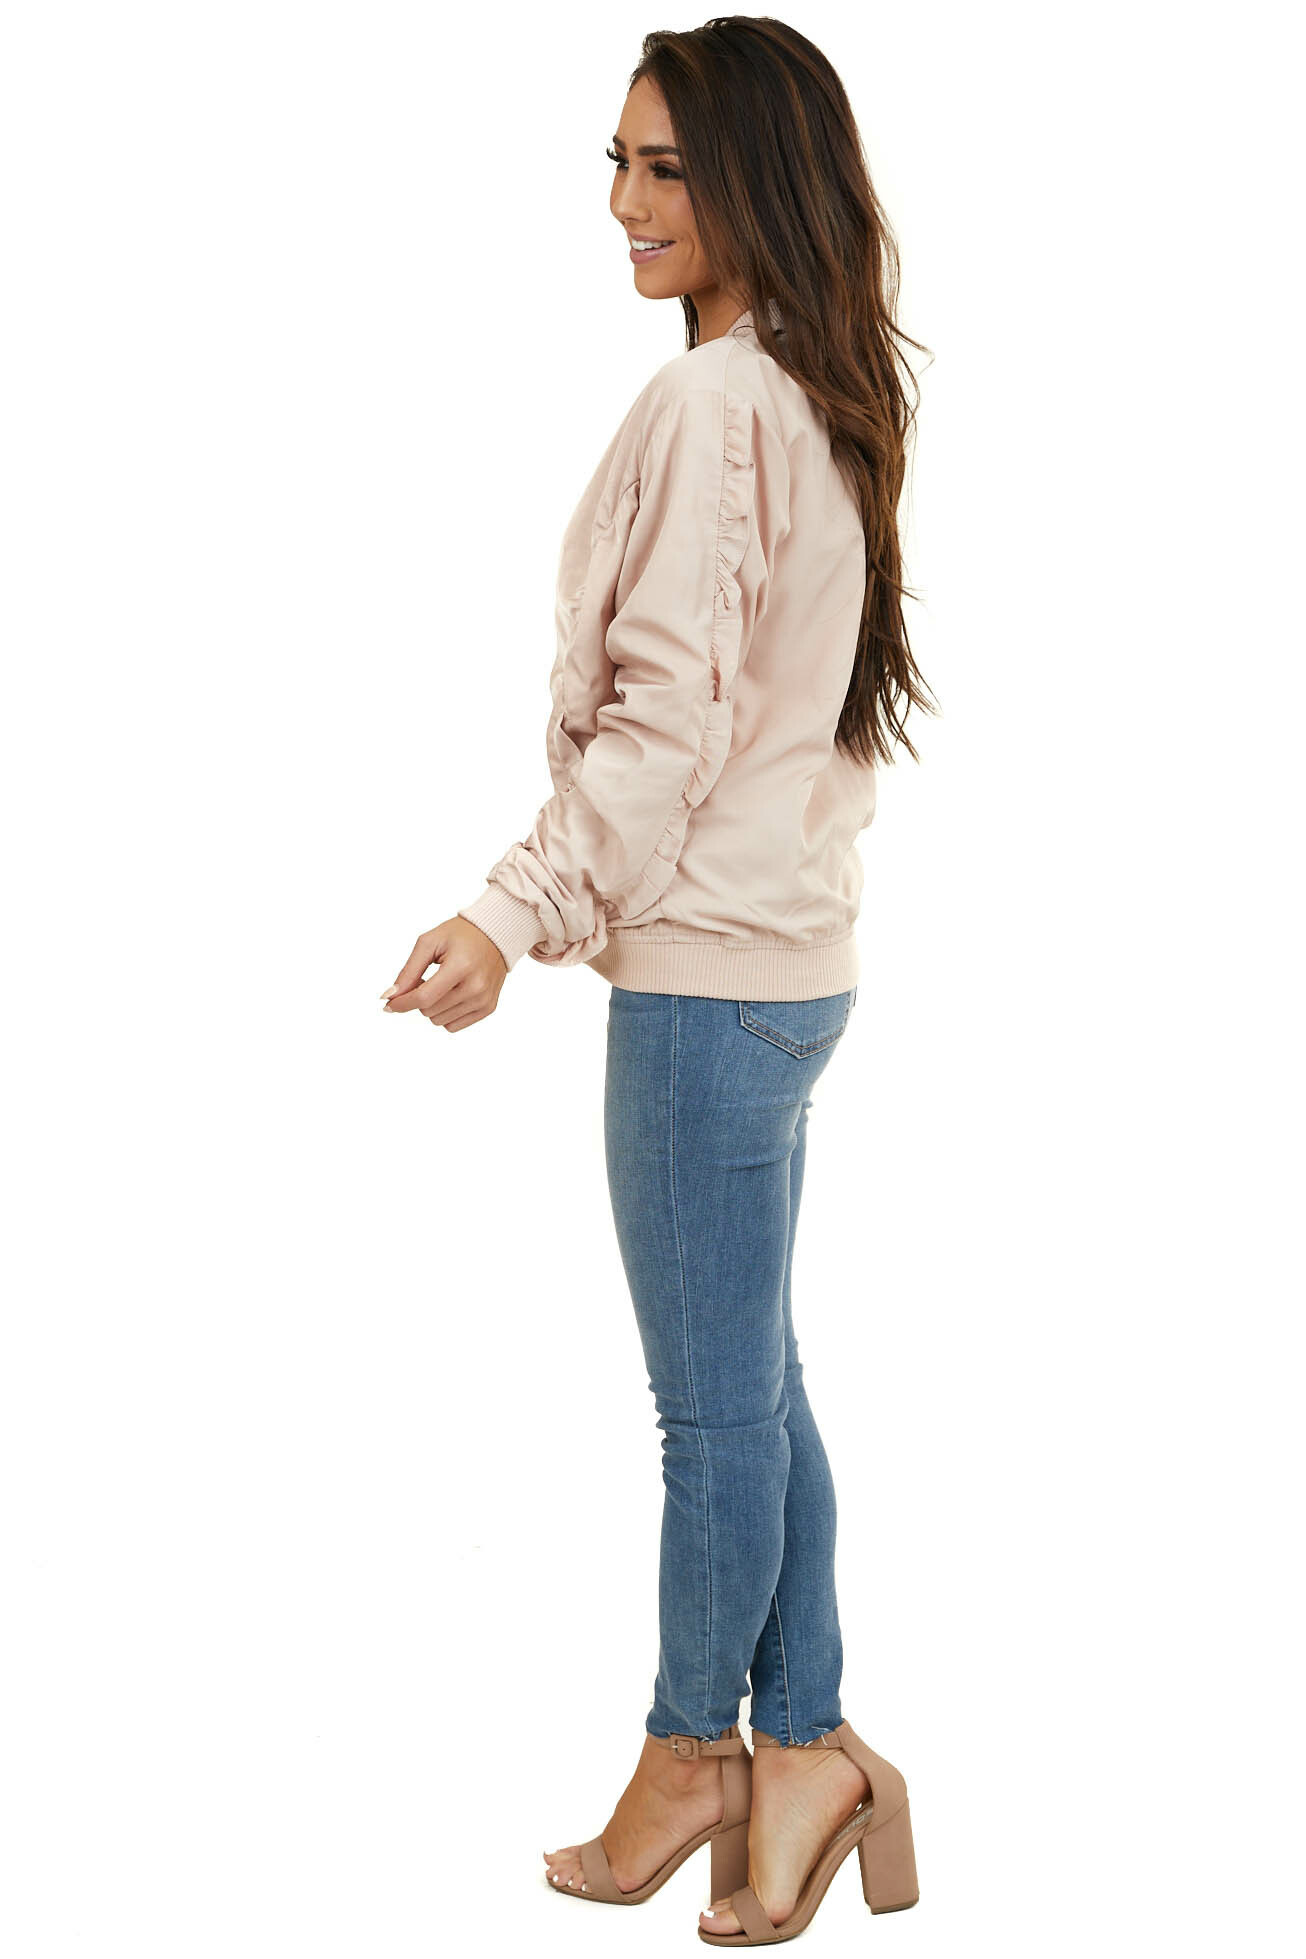 Light Blush Satin Jacket with Ruffle Details and Pockets